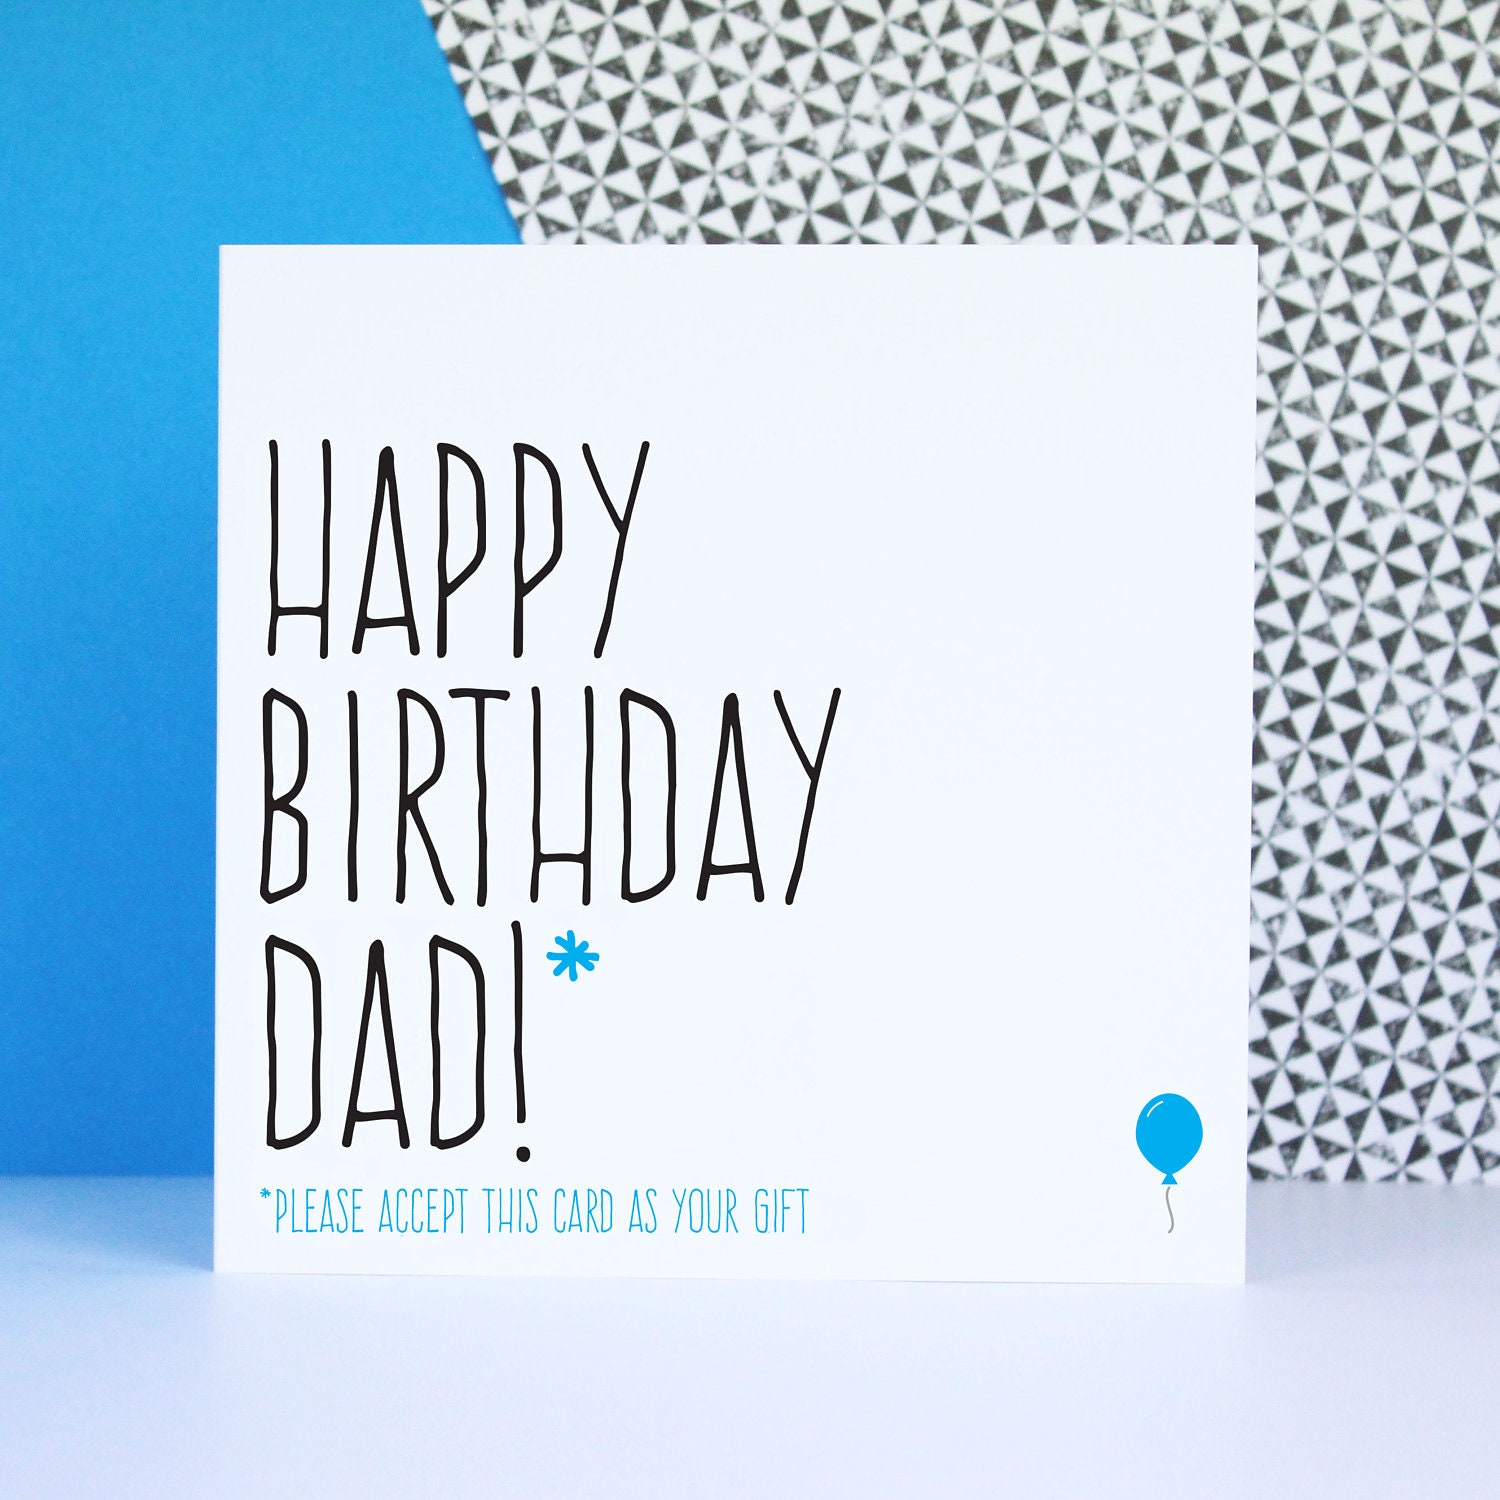 Funny birthday card for dad card for dad Happy birthday Dad